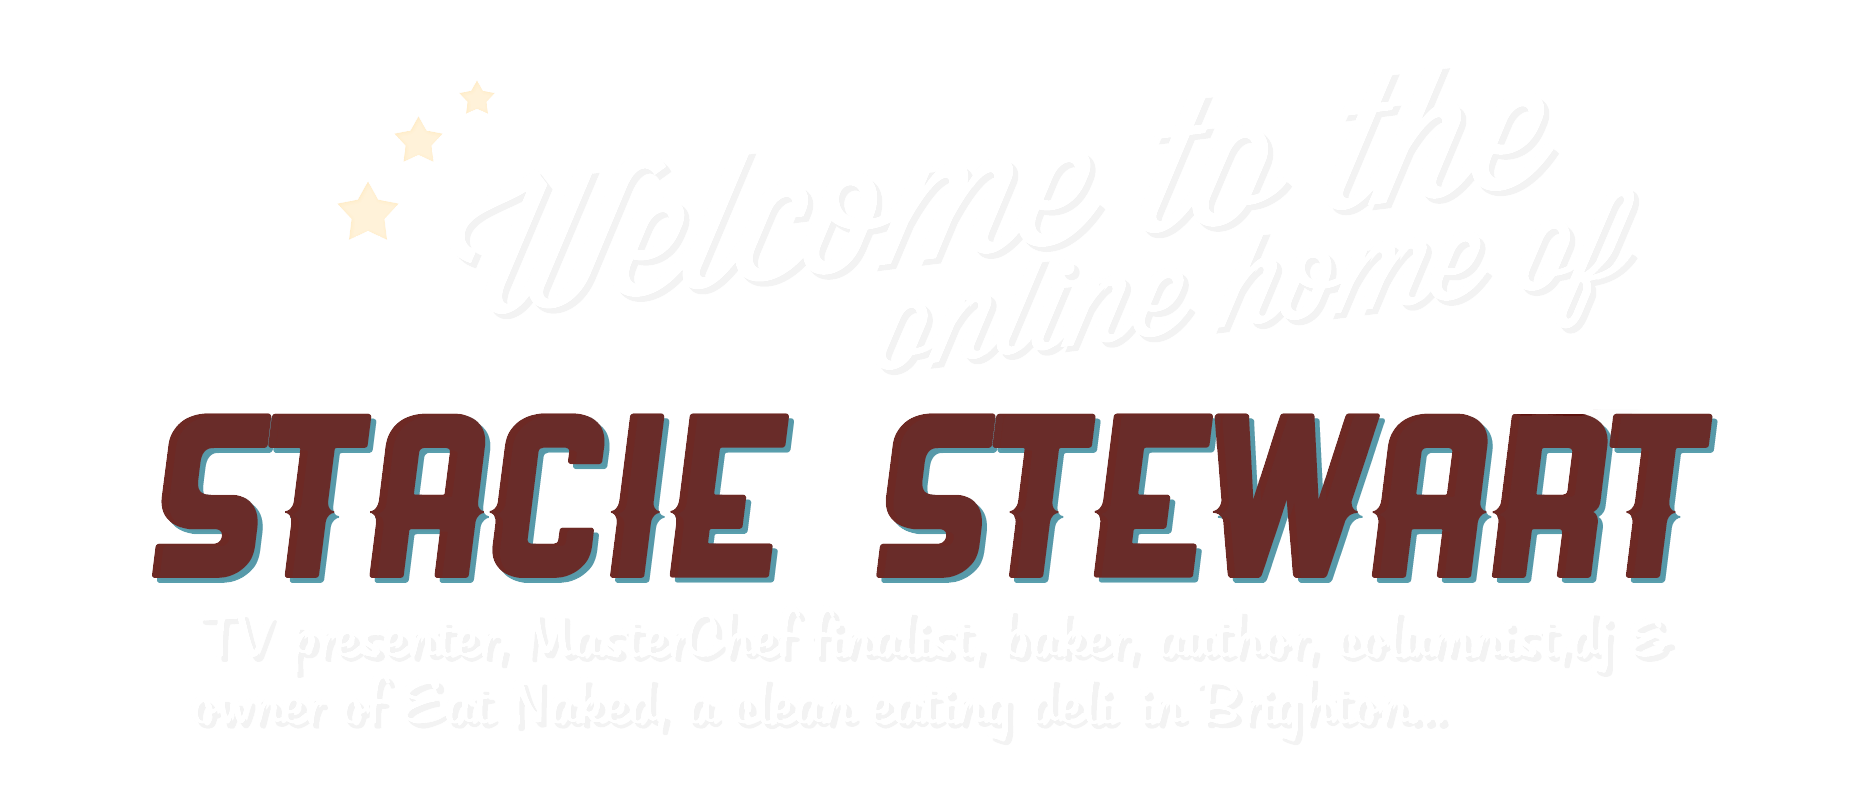 Welcome to staciestewart.co.uk